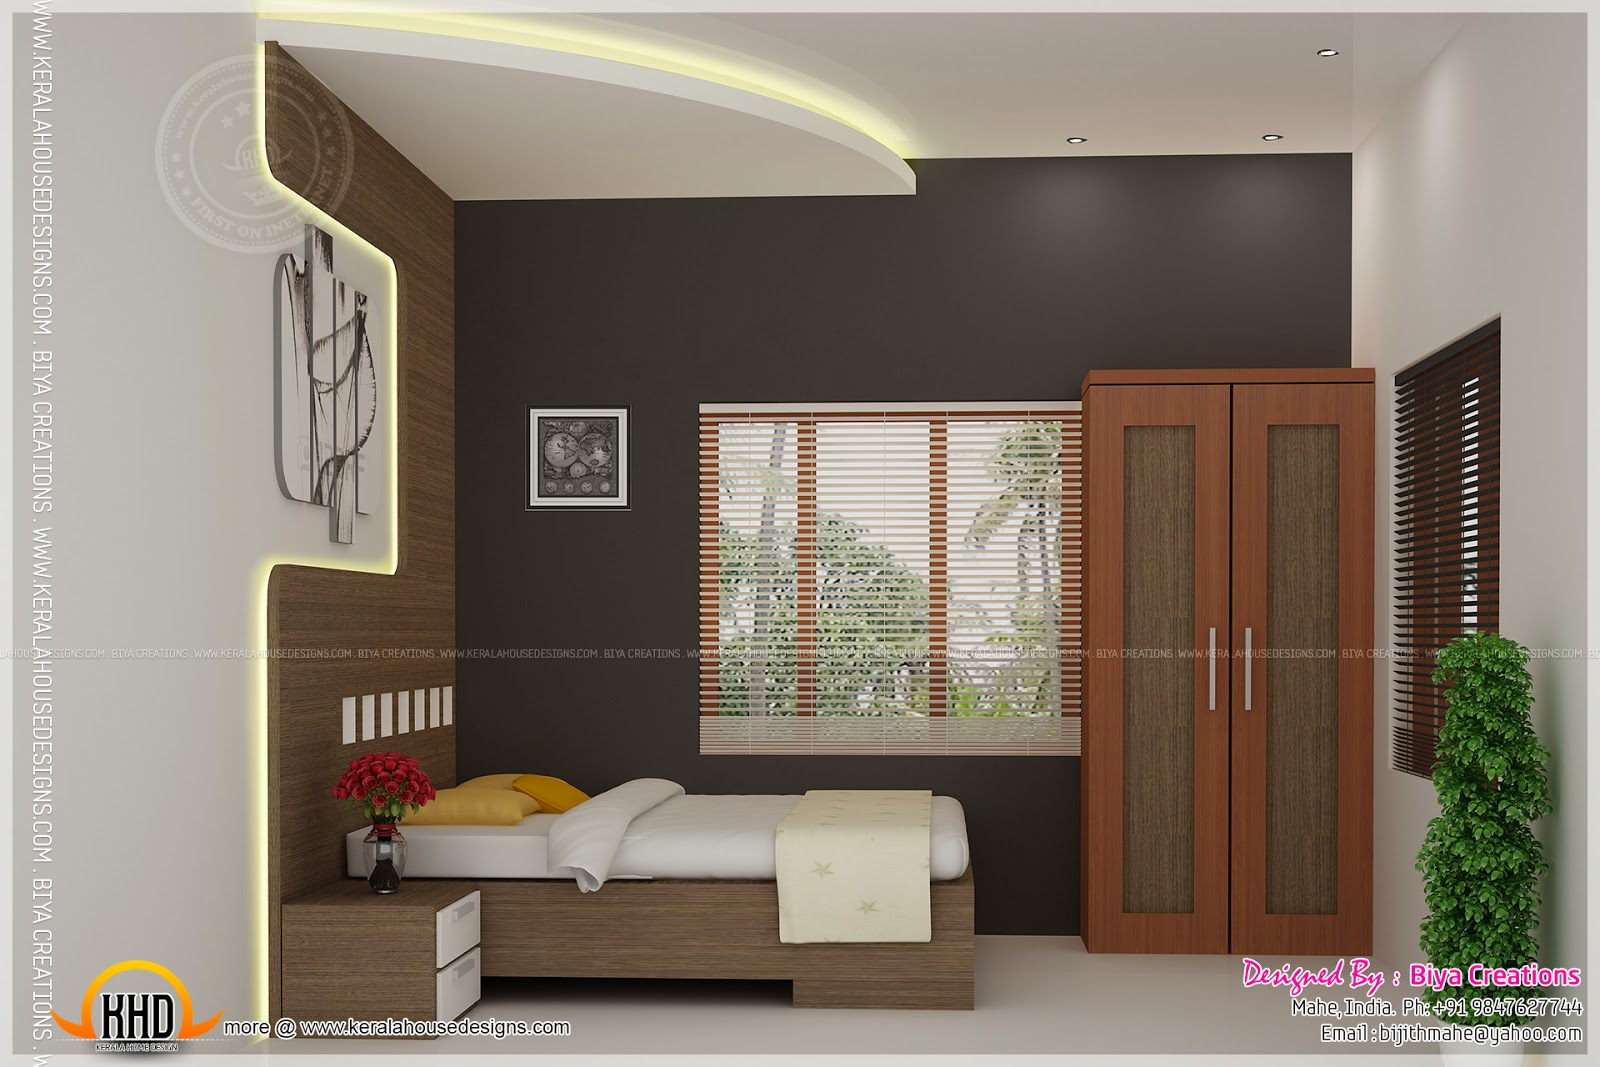 Bedroom kid bedroom and kitchen interior kerala home design and floor plans Gorgeous small bedroom designs for indian homes